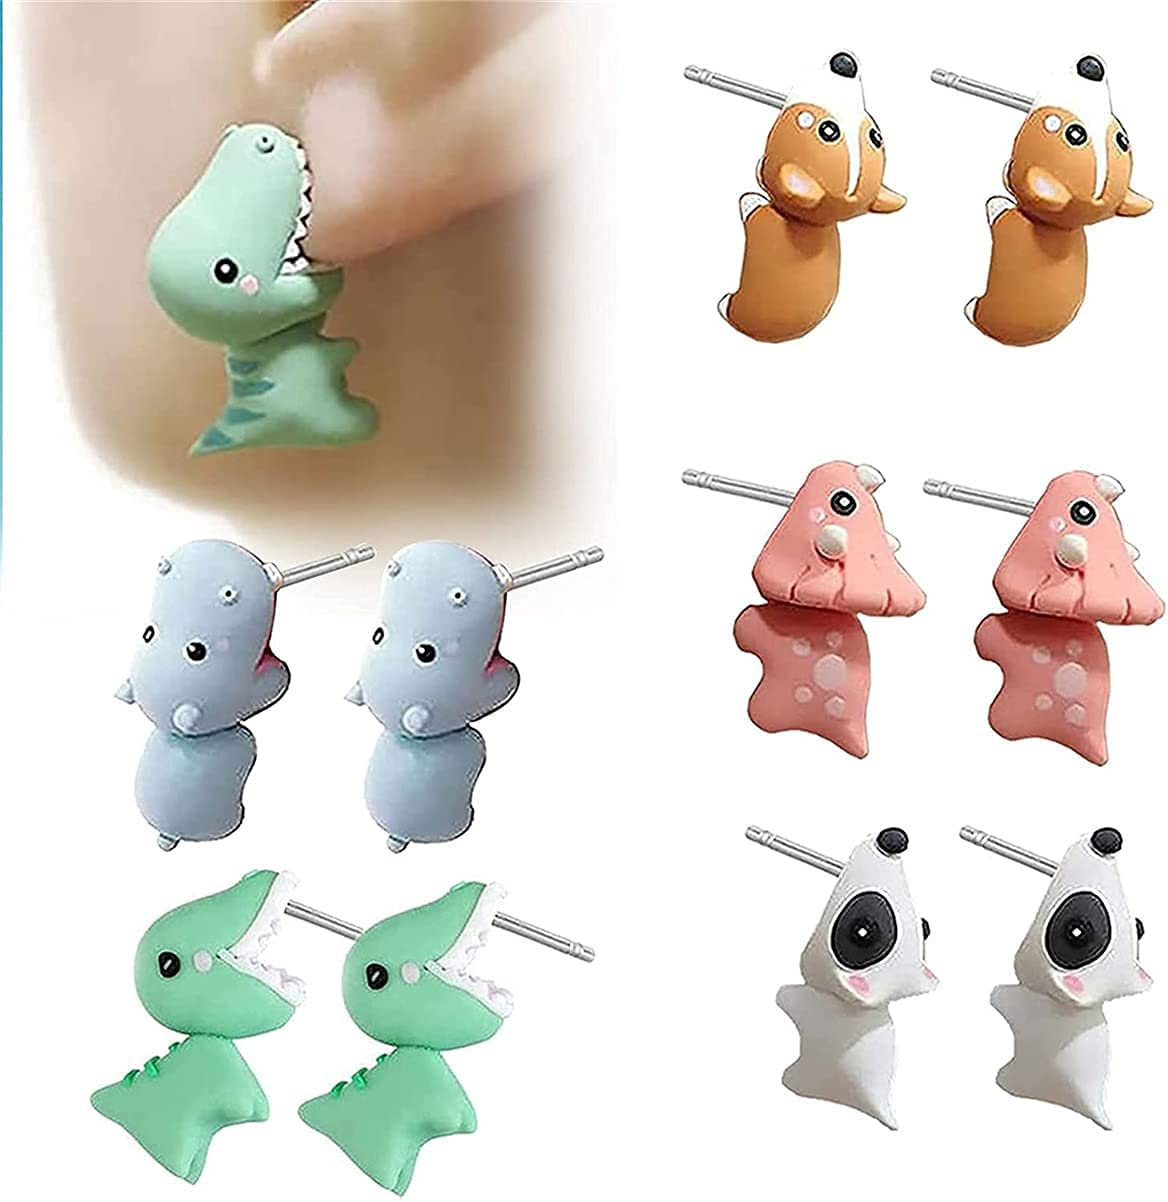 Cute Animal Bite Earring,3D Clay Earrings,Small and Exquisite for Easy Carrying and Collection.Fashion Simple Handmade Polymer Animal Stud Earrings. (T Rex Dinosaur)